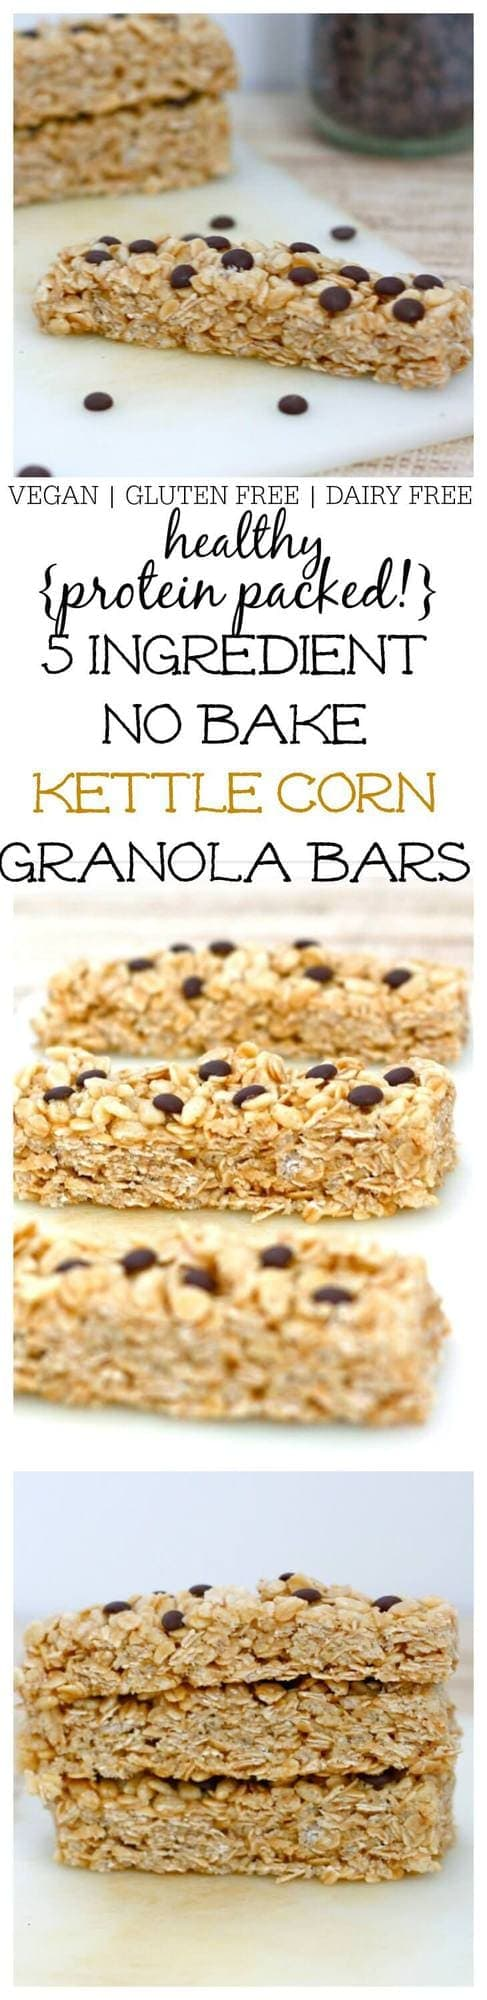 no-bake-kettle-corn-granola-bars